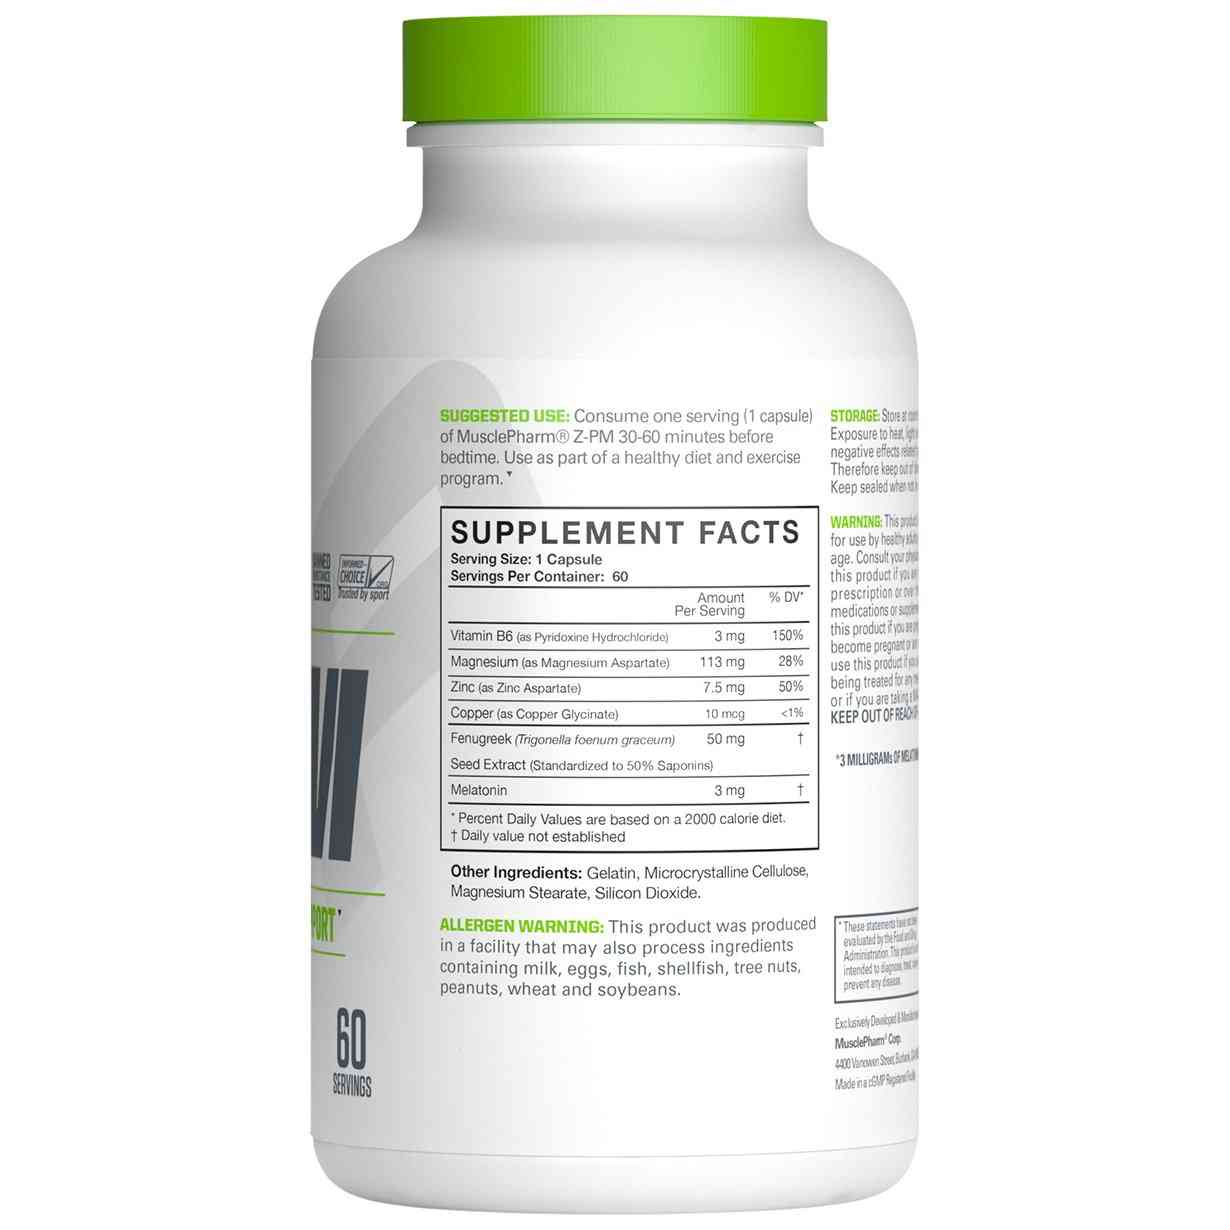 Musclepharm-Z-PM-Recovery-Sleep-Support-1